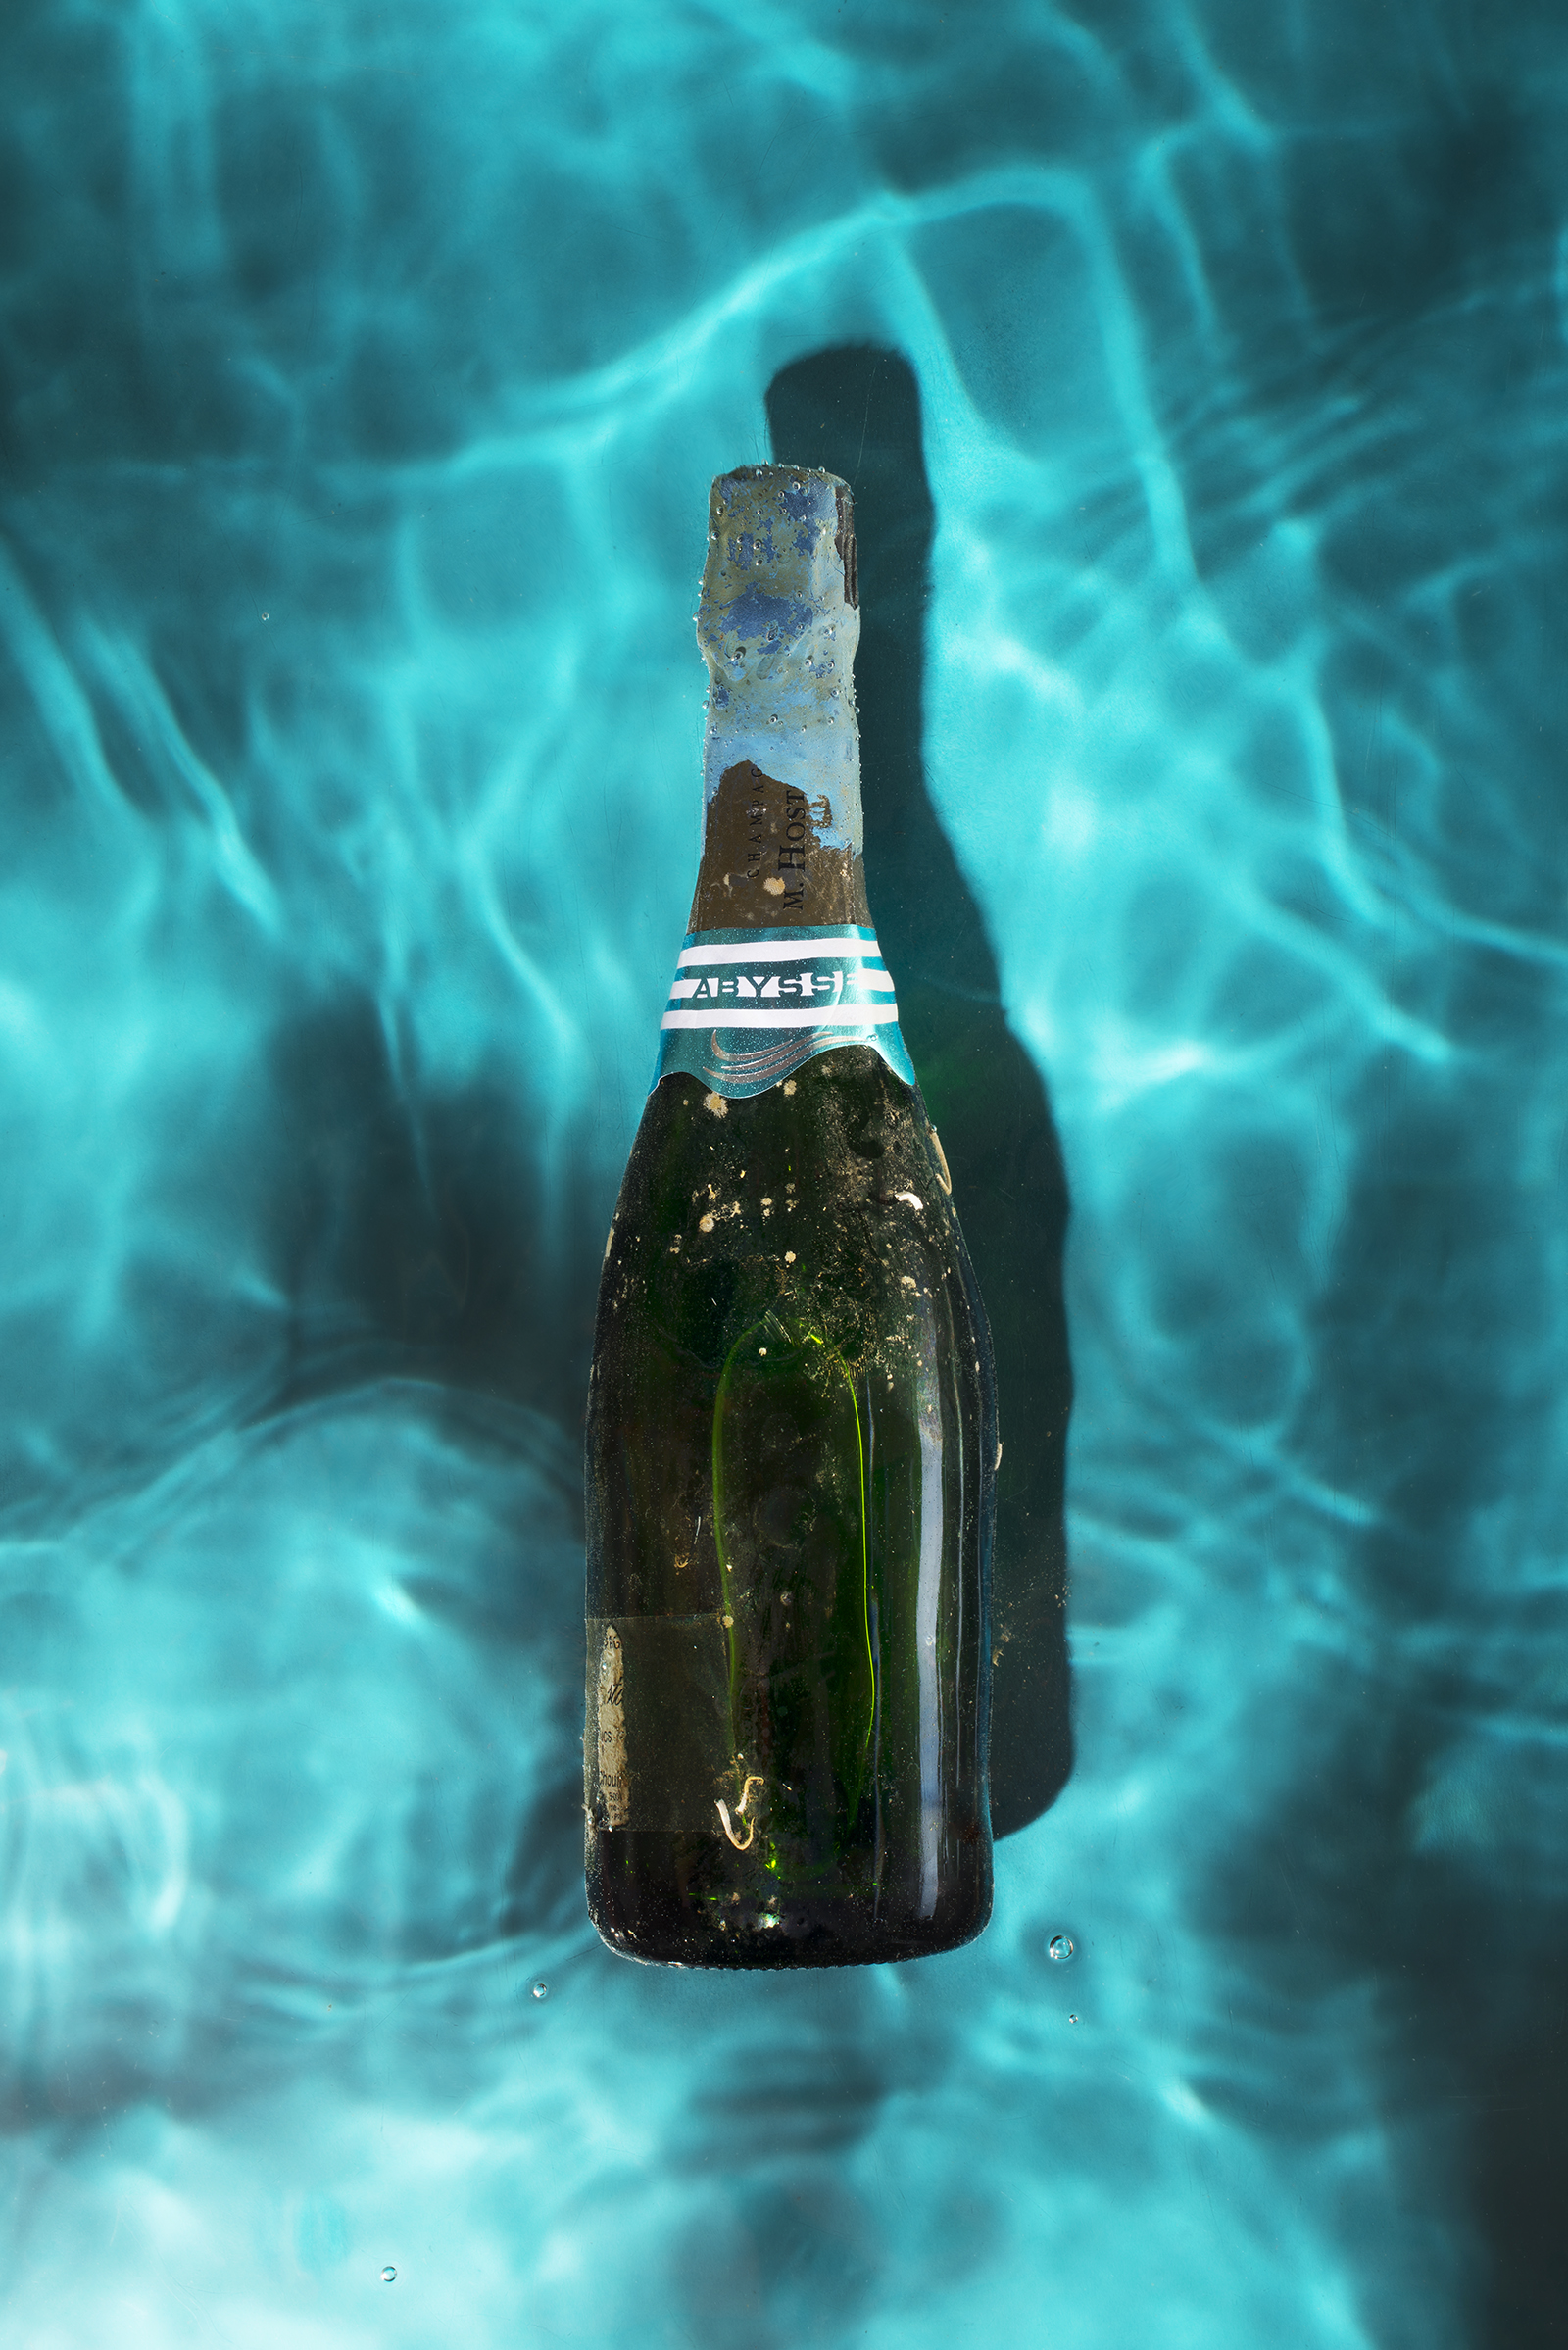 01-packshot-champagne-hostomme